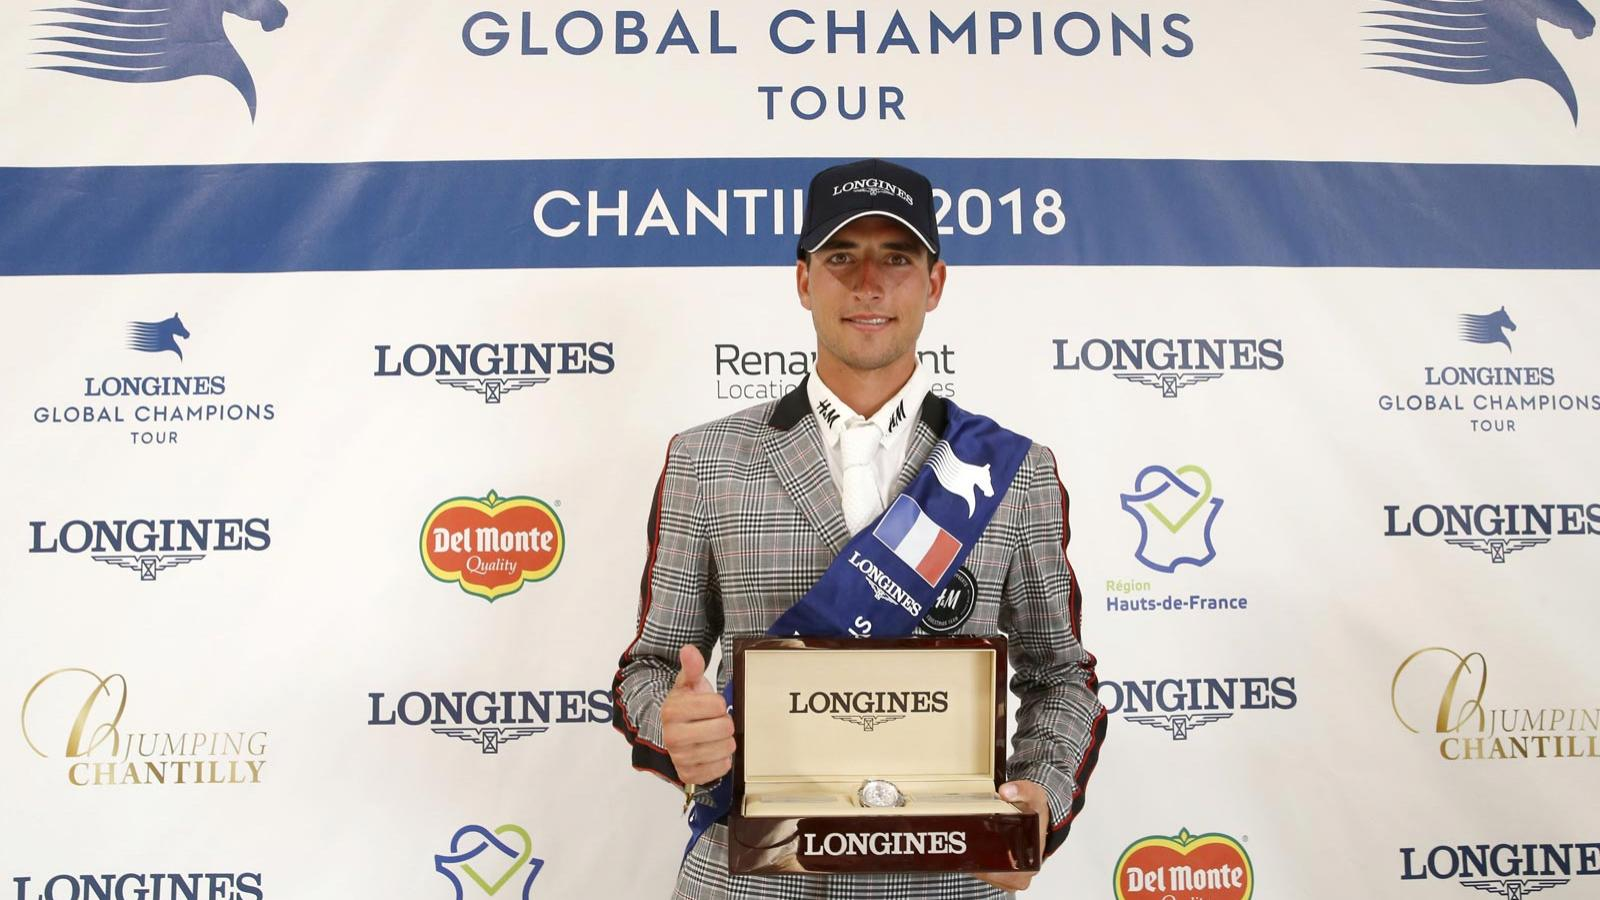 Jumping; Longines Global Champions Tour; Chantilly; 2018; 2